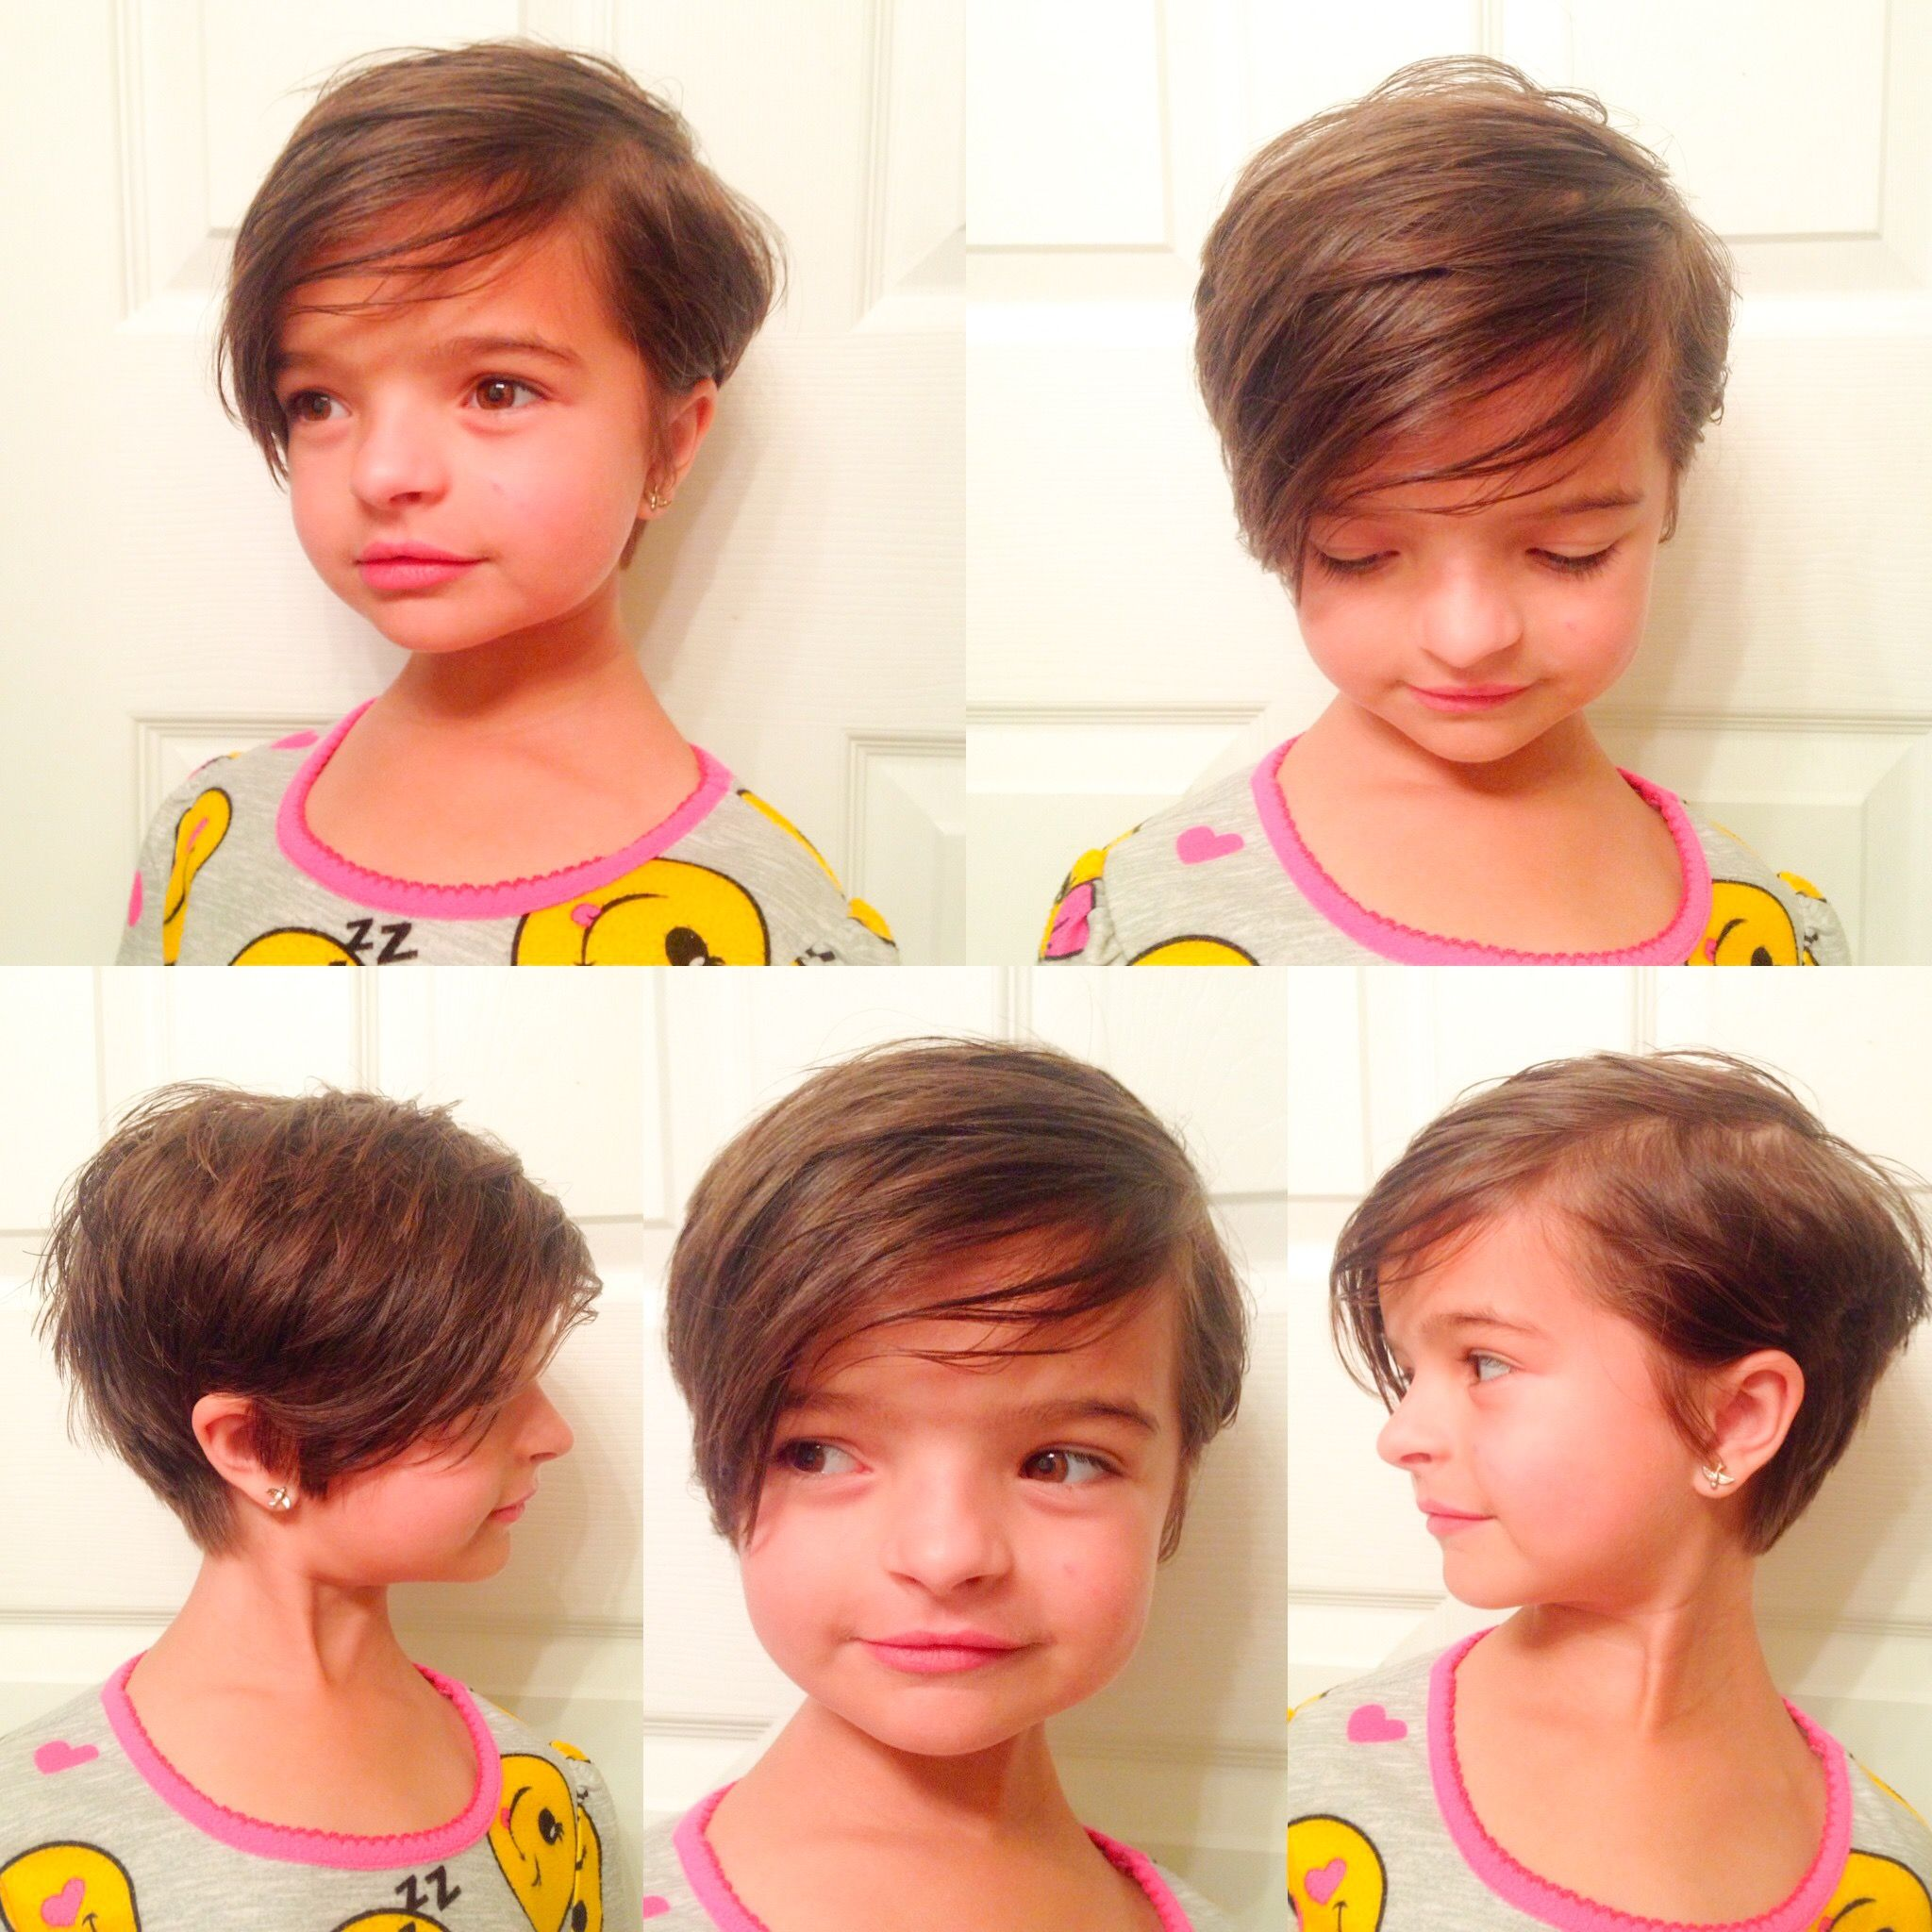 little girl's haircut, little girl's hairstyle, pixie cut